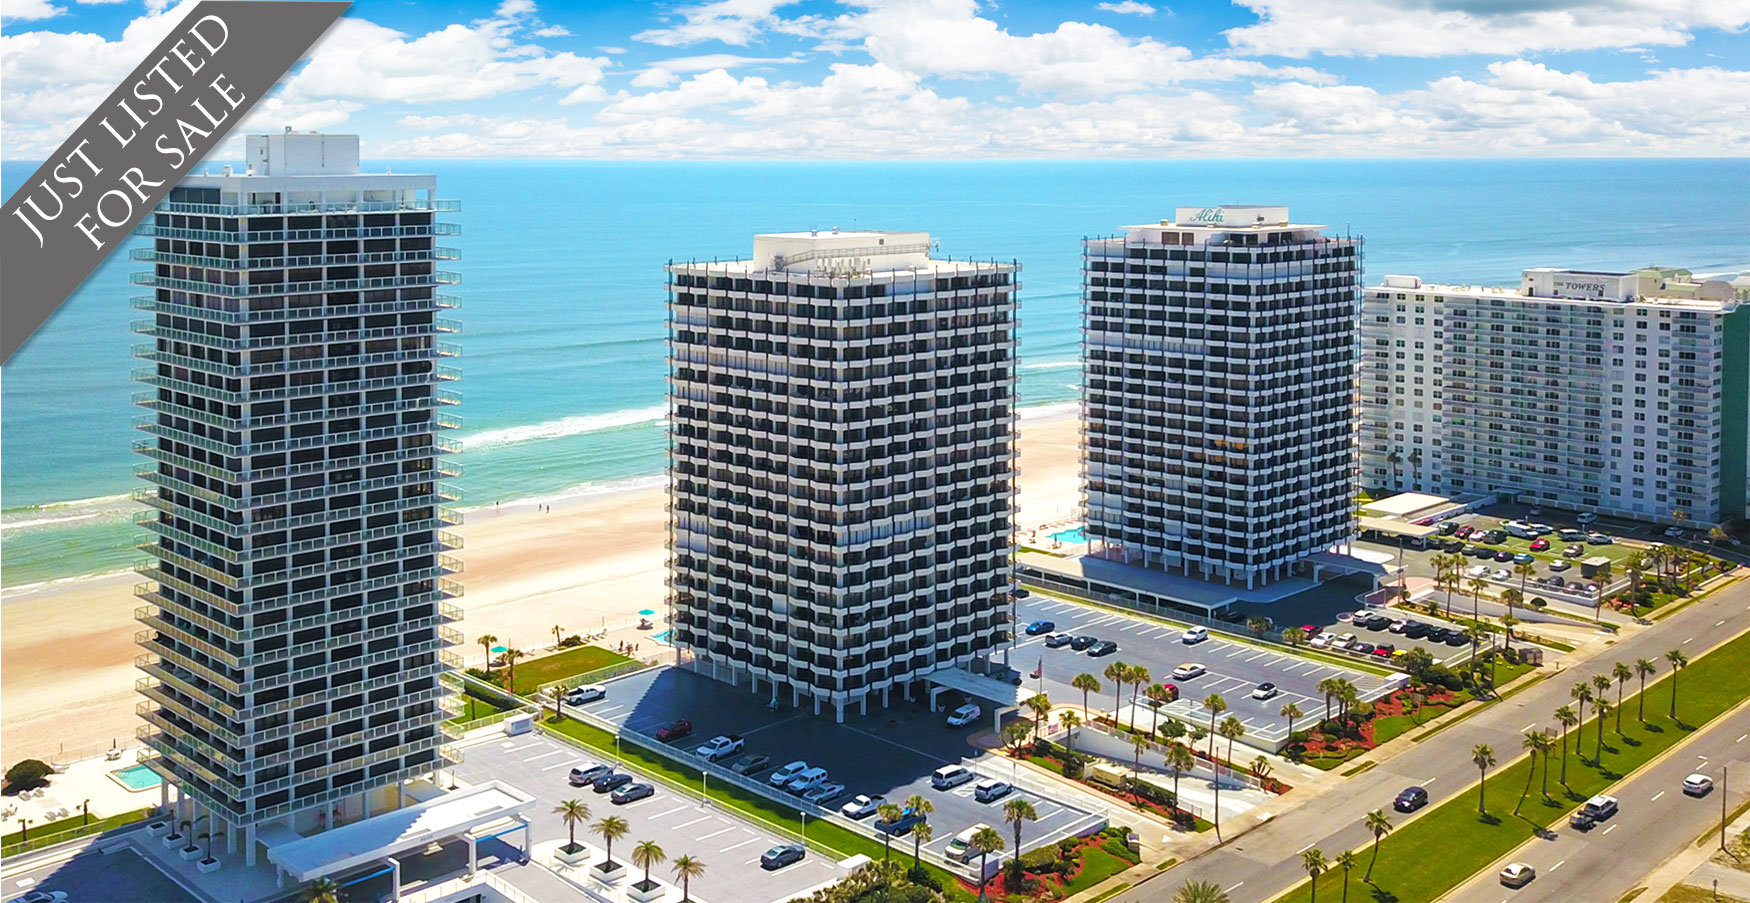 Ocean Ritz Condos For Sale Oceanfront Real Estate at 2900 N Atlantic Ave Daytona Beach, FL